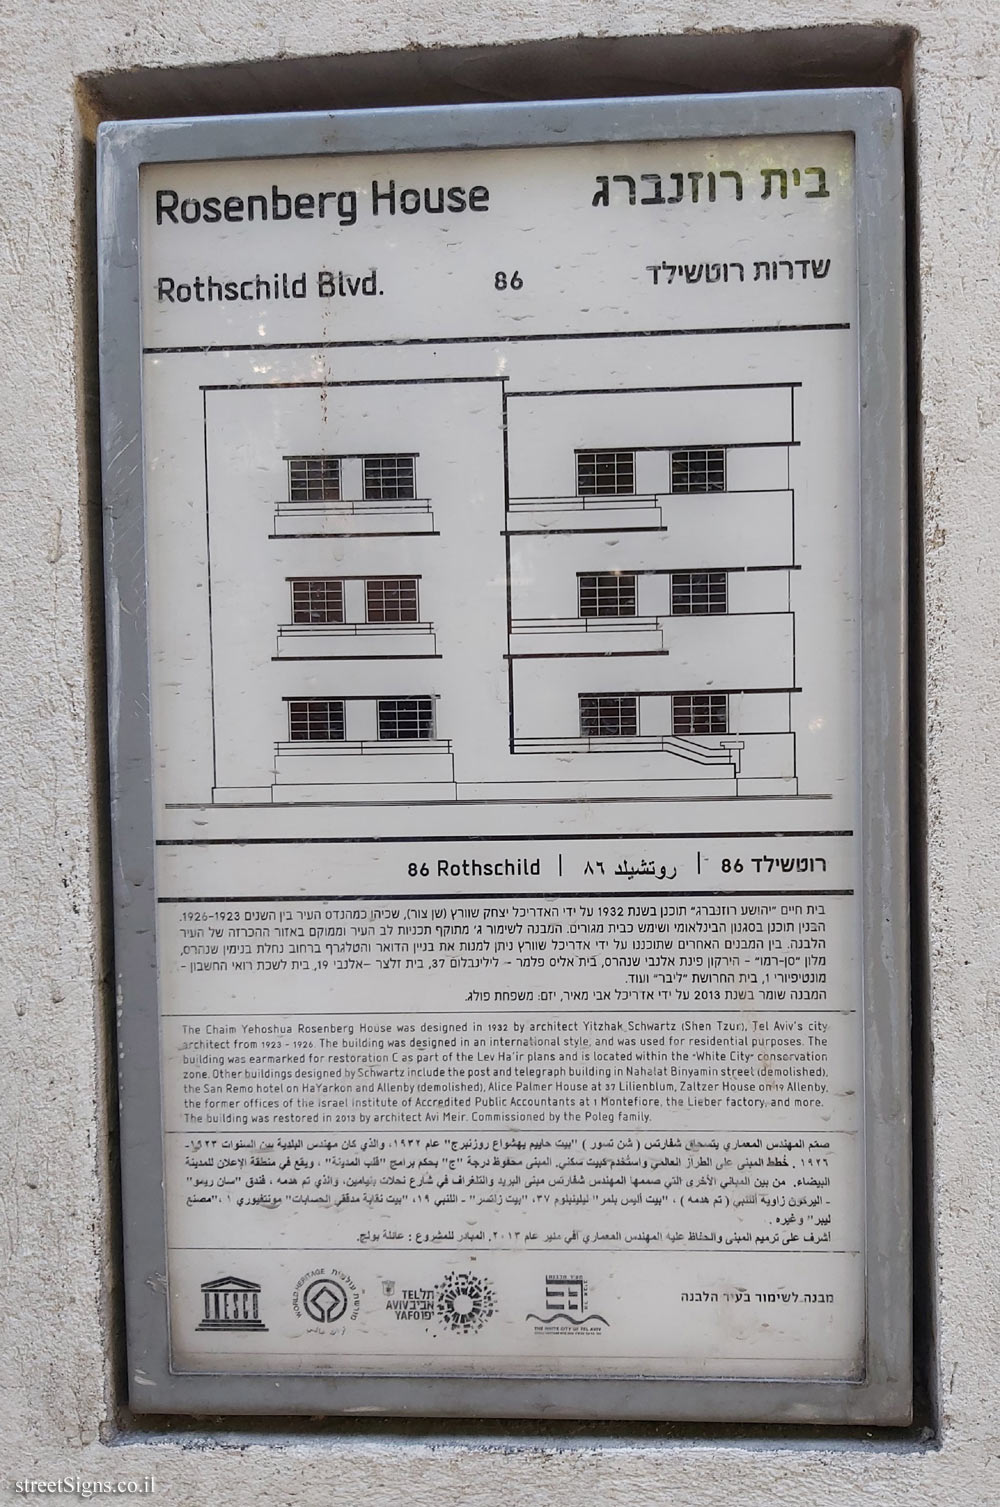 Tel Aviv - buildings for conservation - Rosenberg House, Rothschild 86